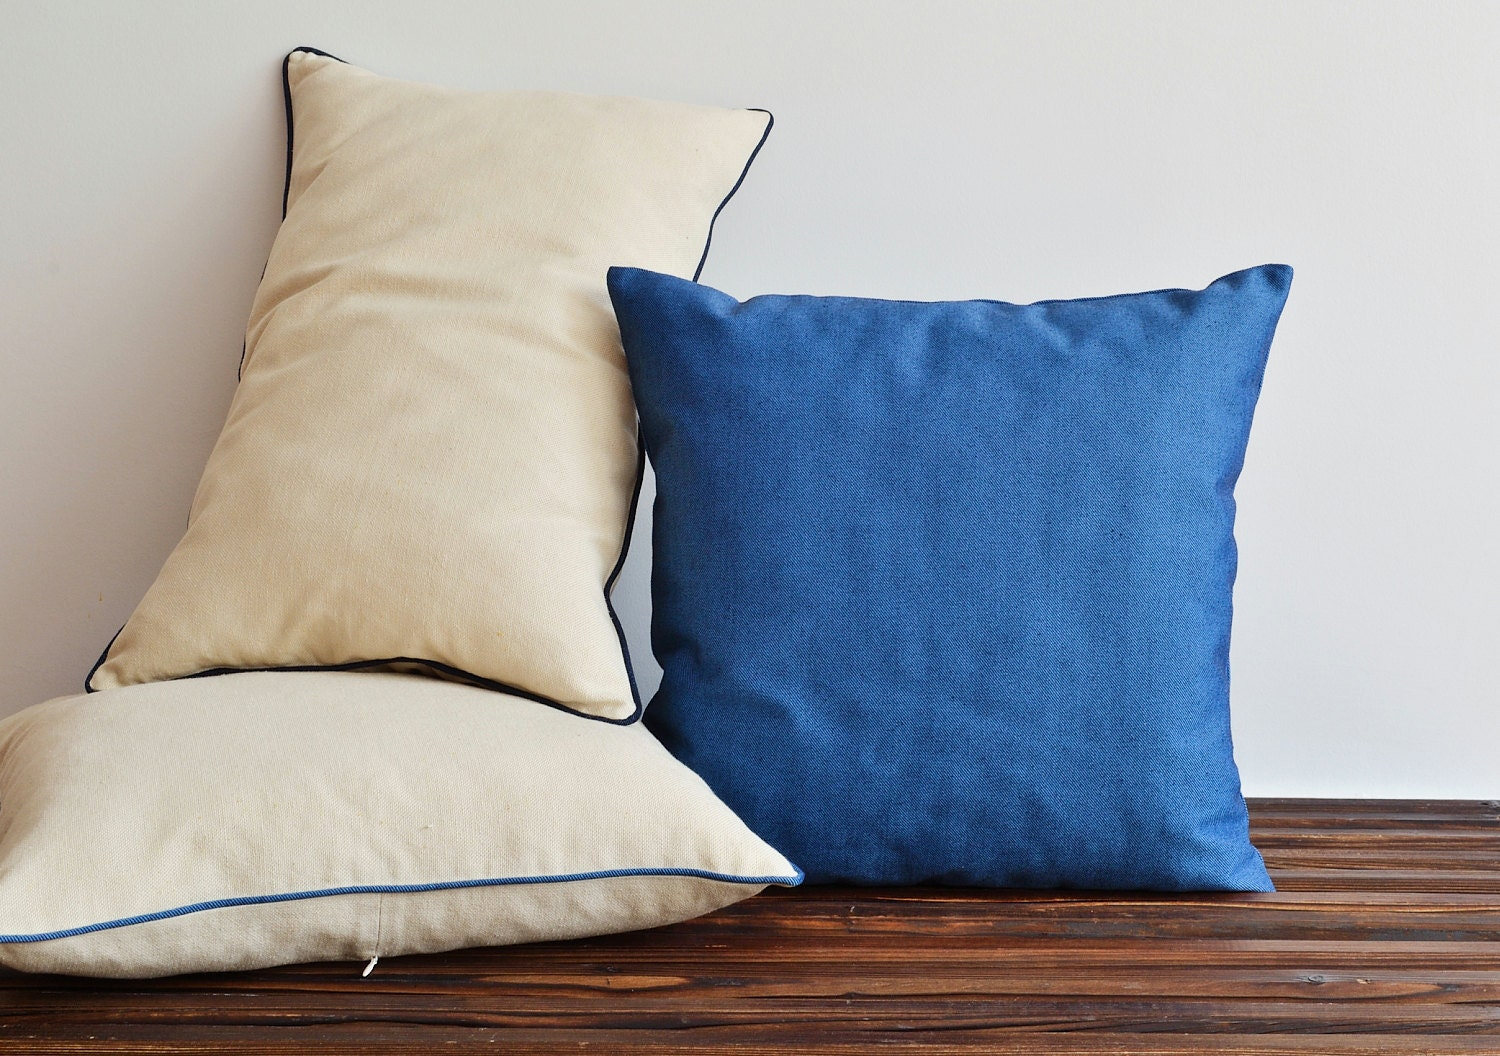 Throw Pillow Case 20 X 20 : Blue Denim Pillow Cover 20x20 throw pillow by pillowme on Etsy